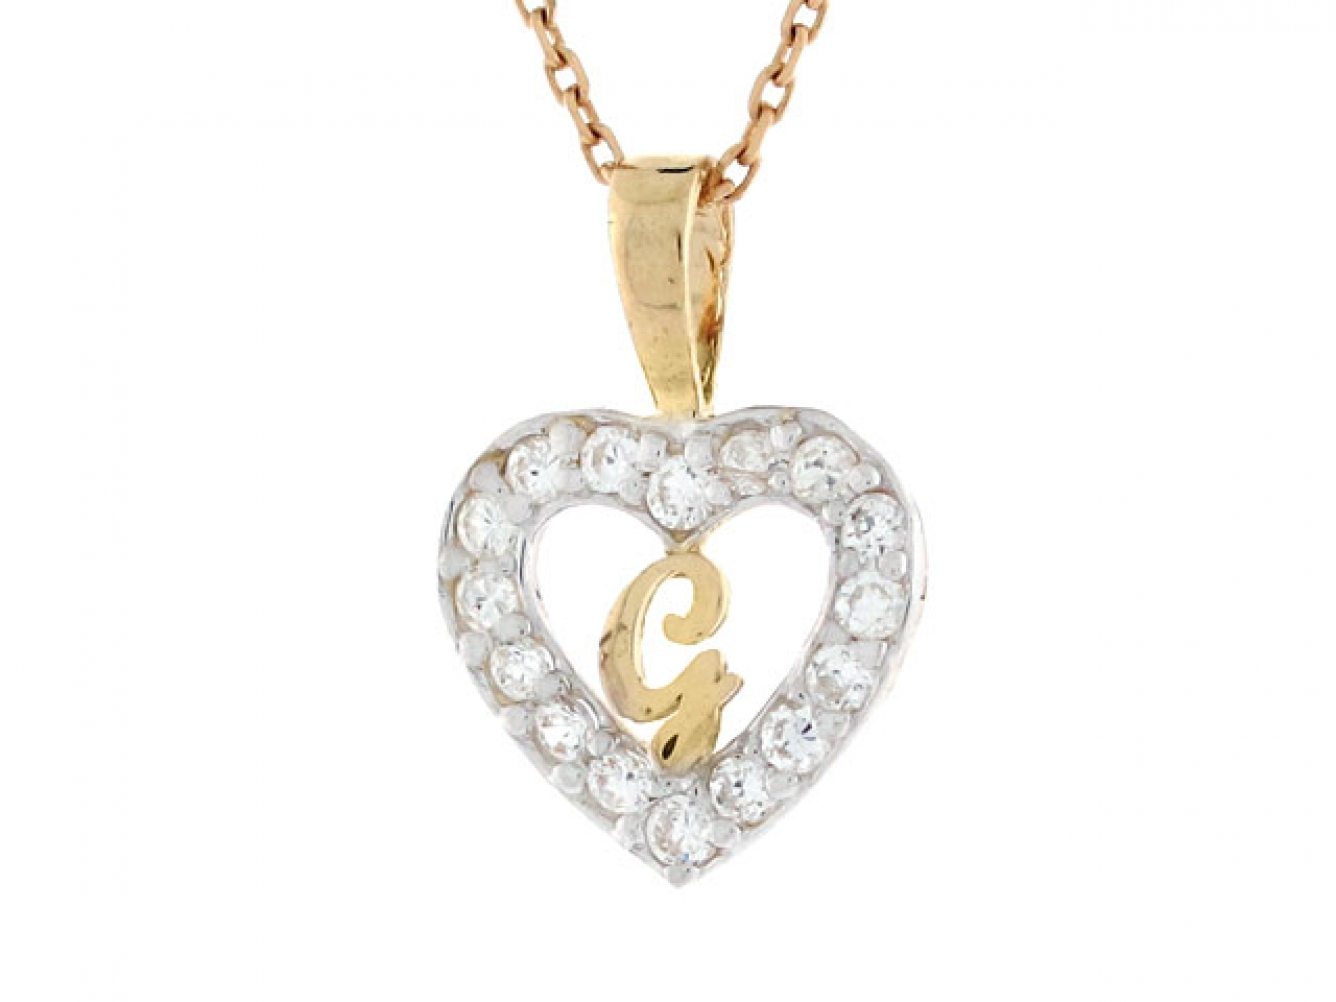 6ac4b542ac439 Product Description. Gold Heart Shape Letter  g  Initial CZ Ring Jewelry